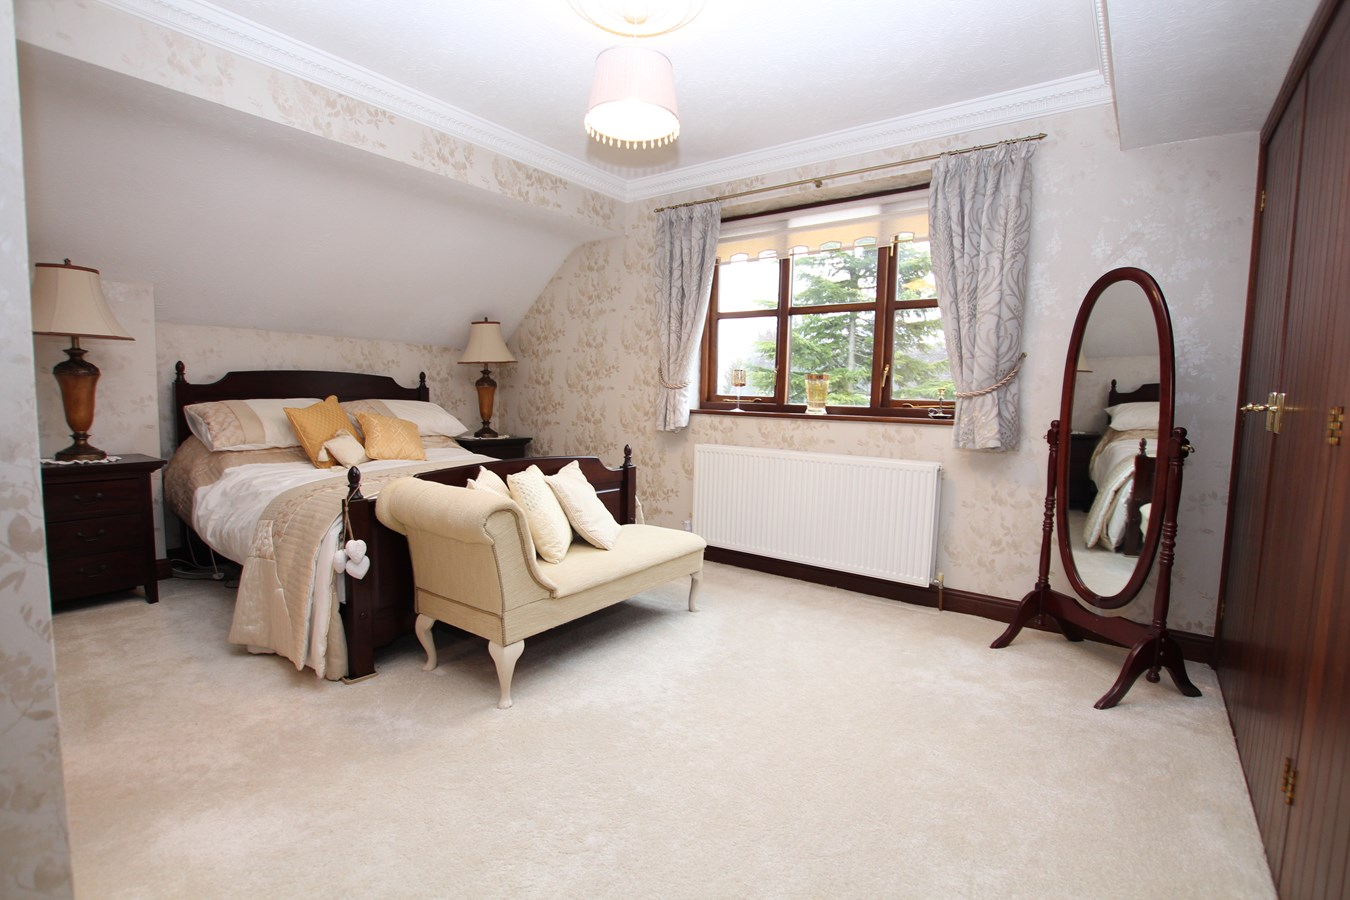 4 Bedroom Detached House For Sale In Lichfield